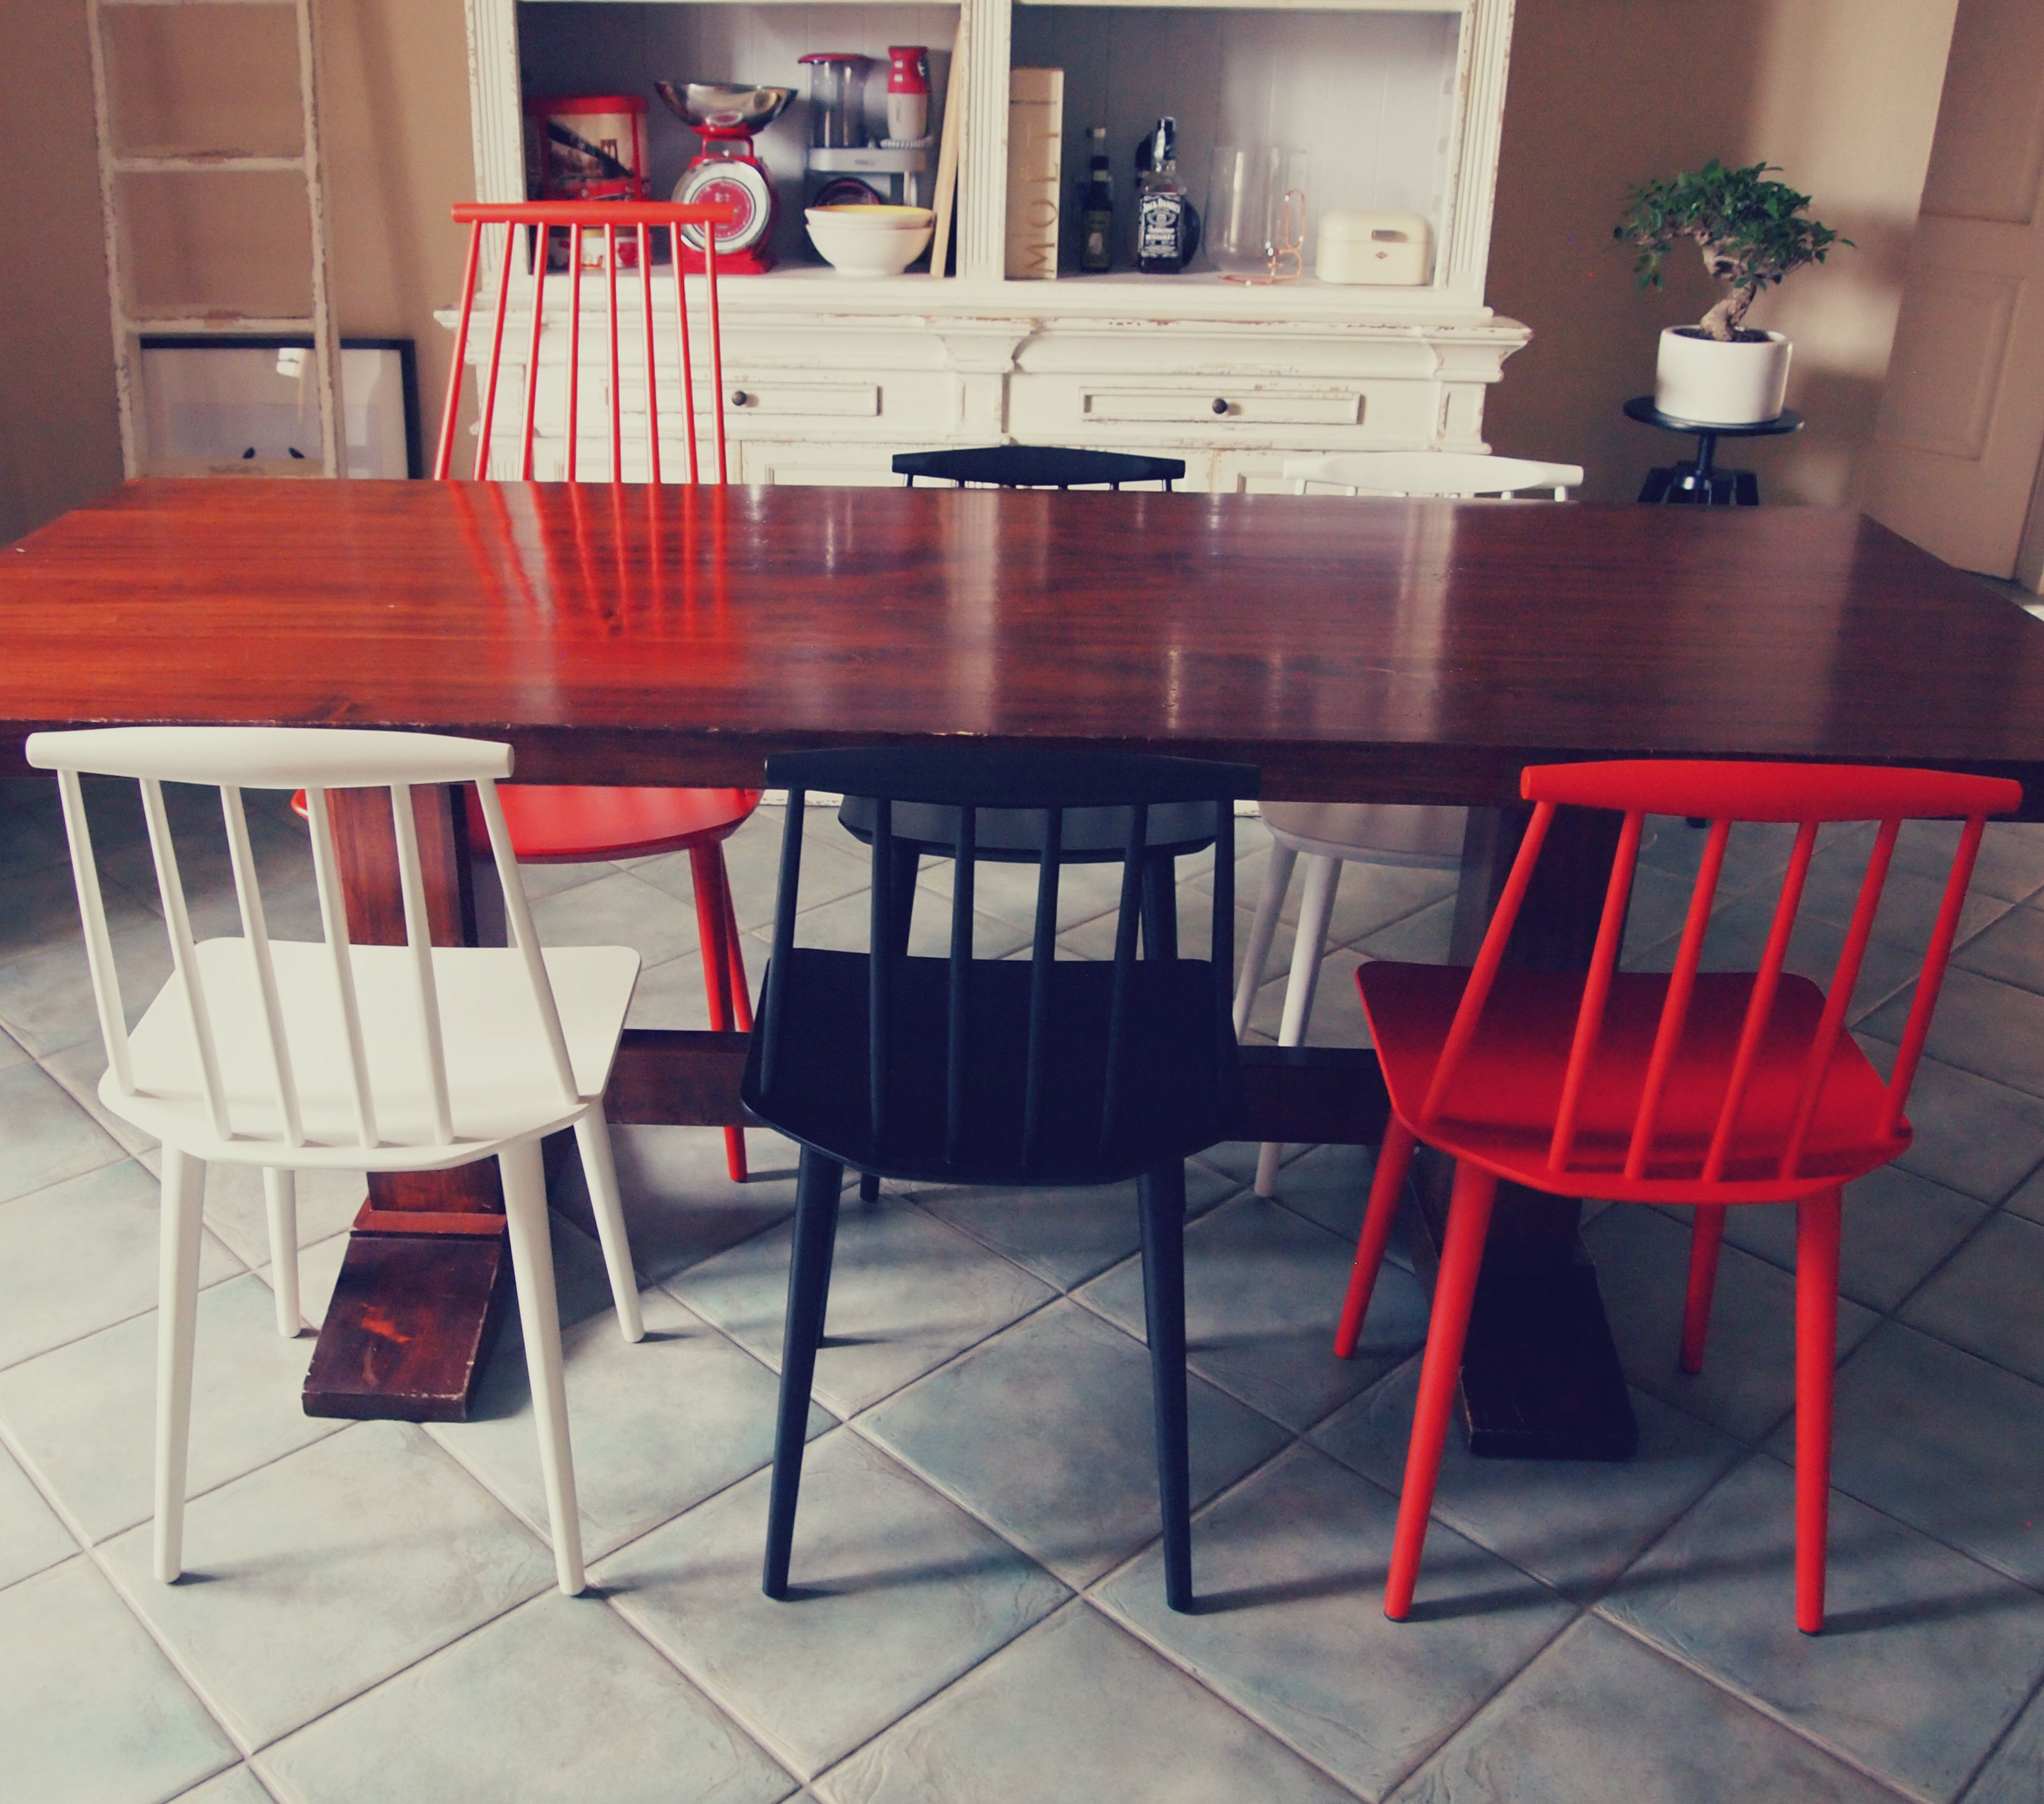 J77 Chair By Hay